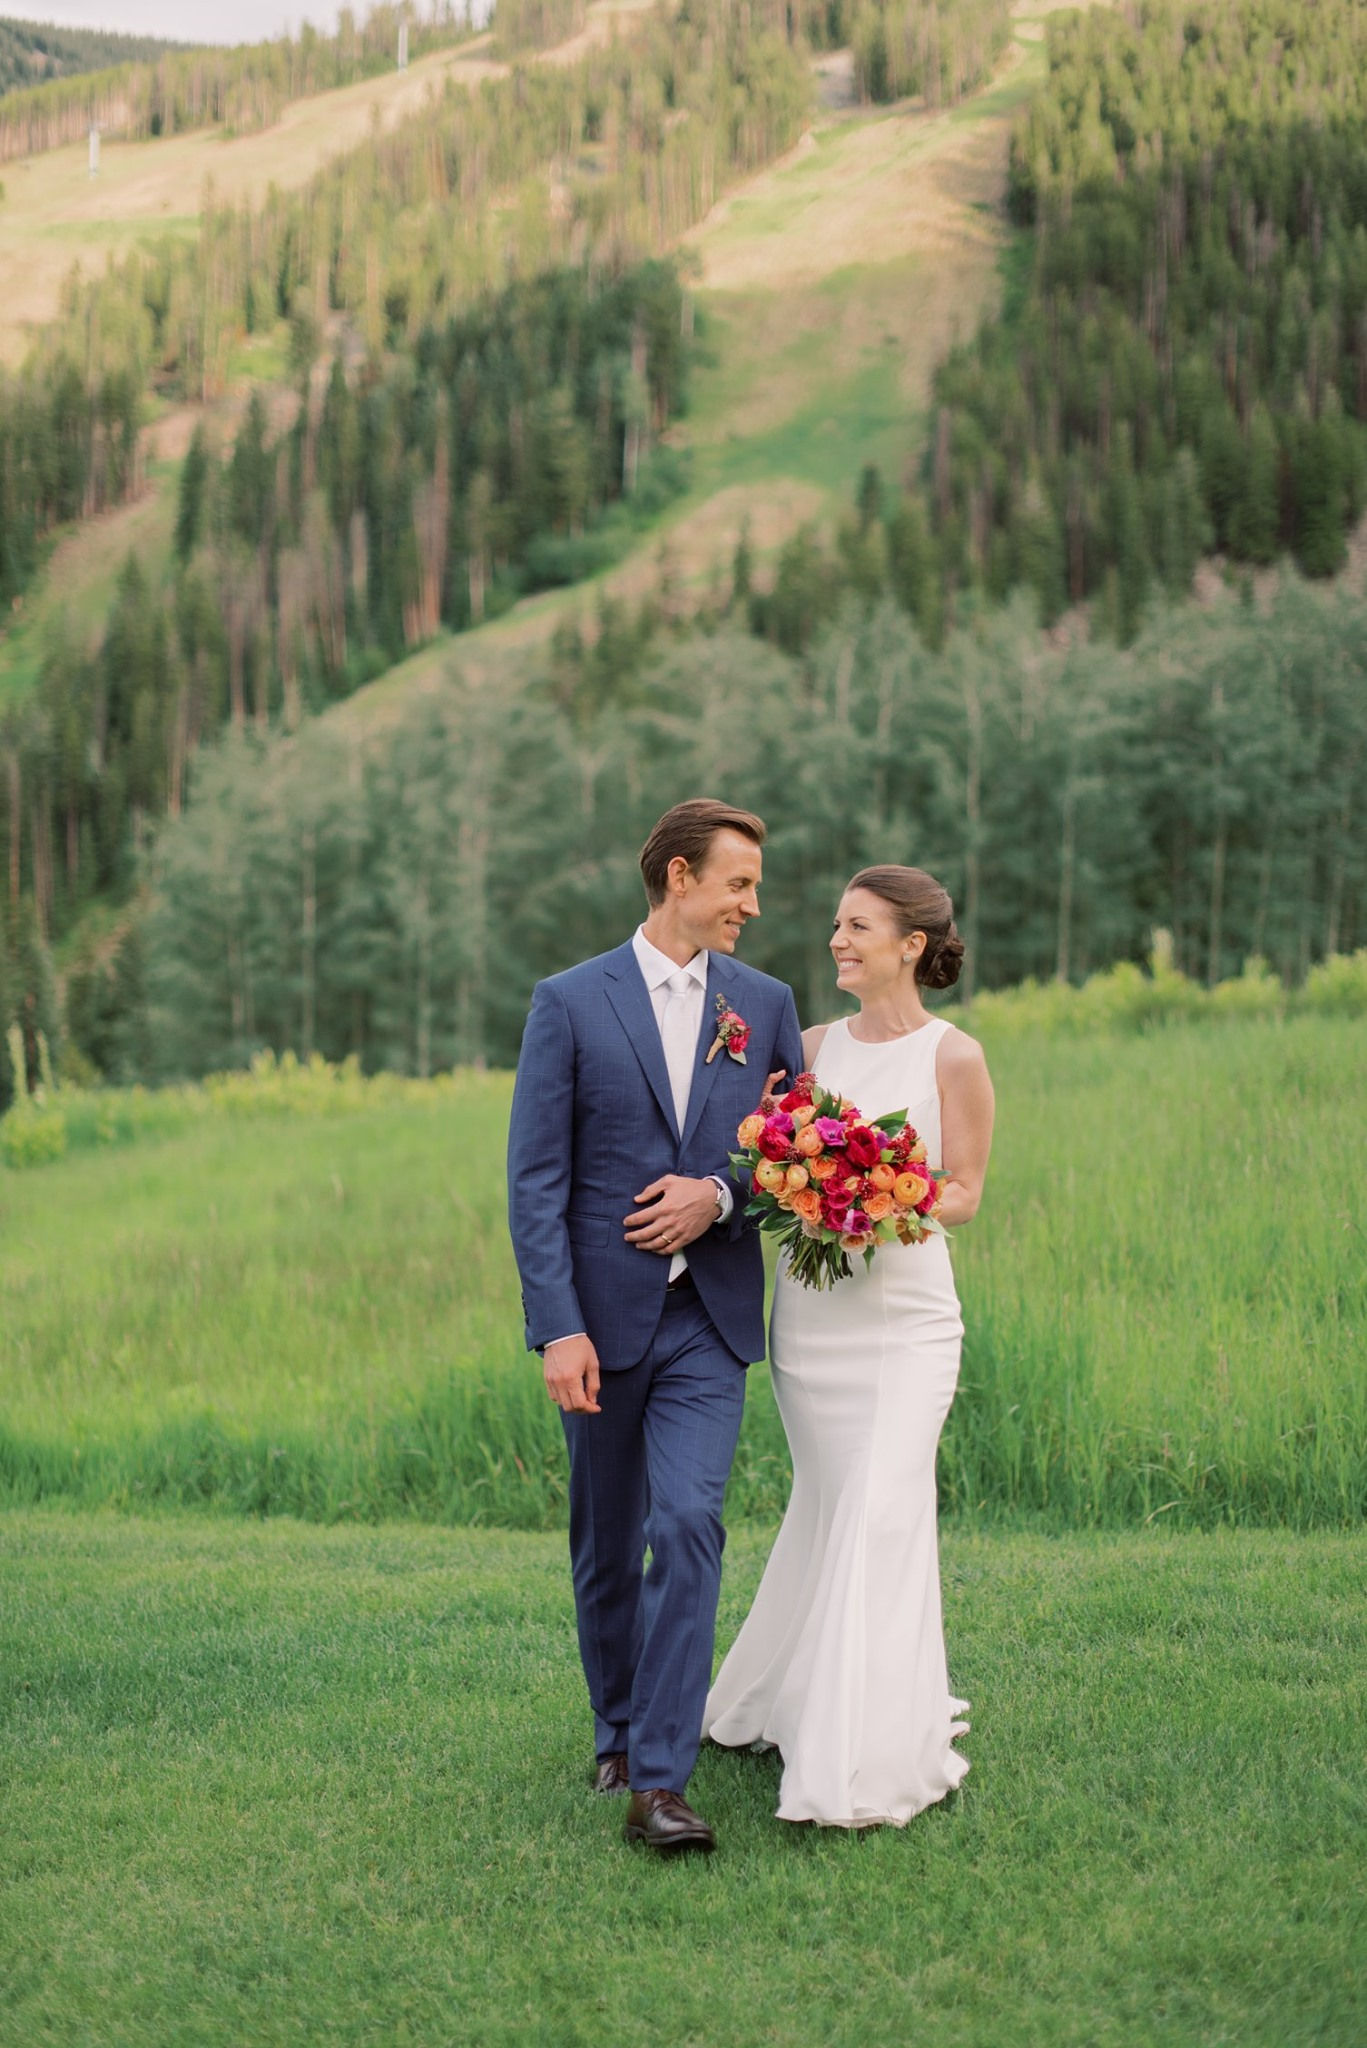 Classical and Contemporary String Quartet Wedding Ceremony Music at Beano's Cabin in Beaver Creek, Colorado. Photo by Melissa Brielle Photography.